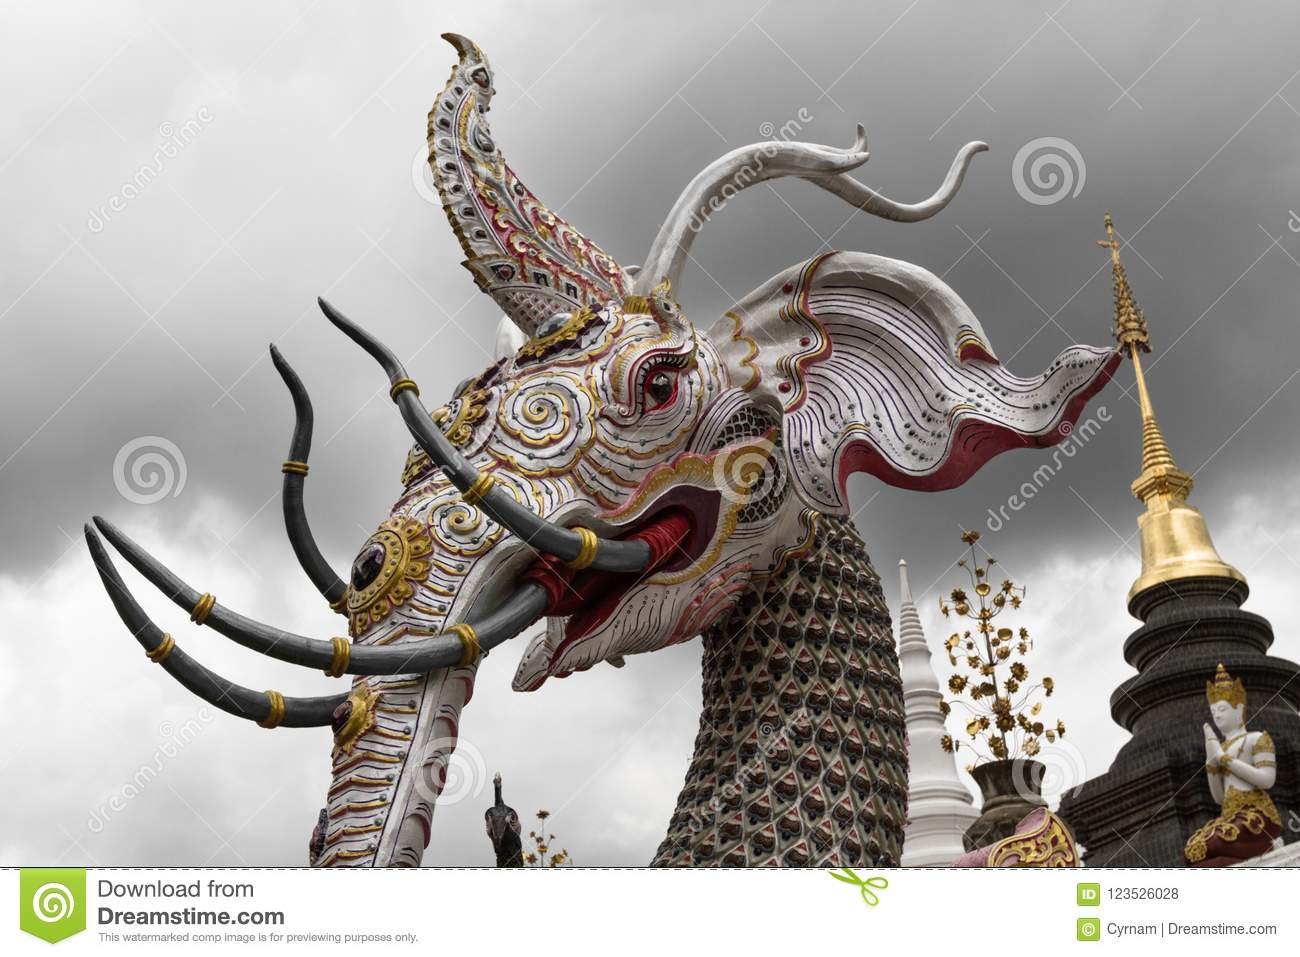 Amazing Elephant Divinity And Himmapan Mythical Creature With